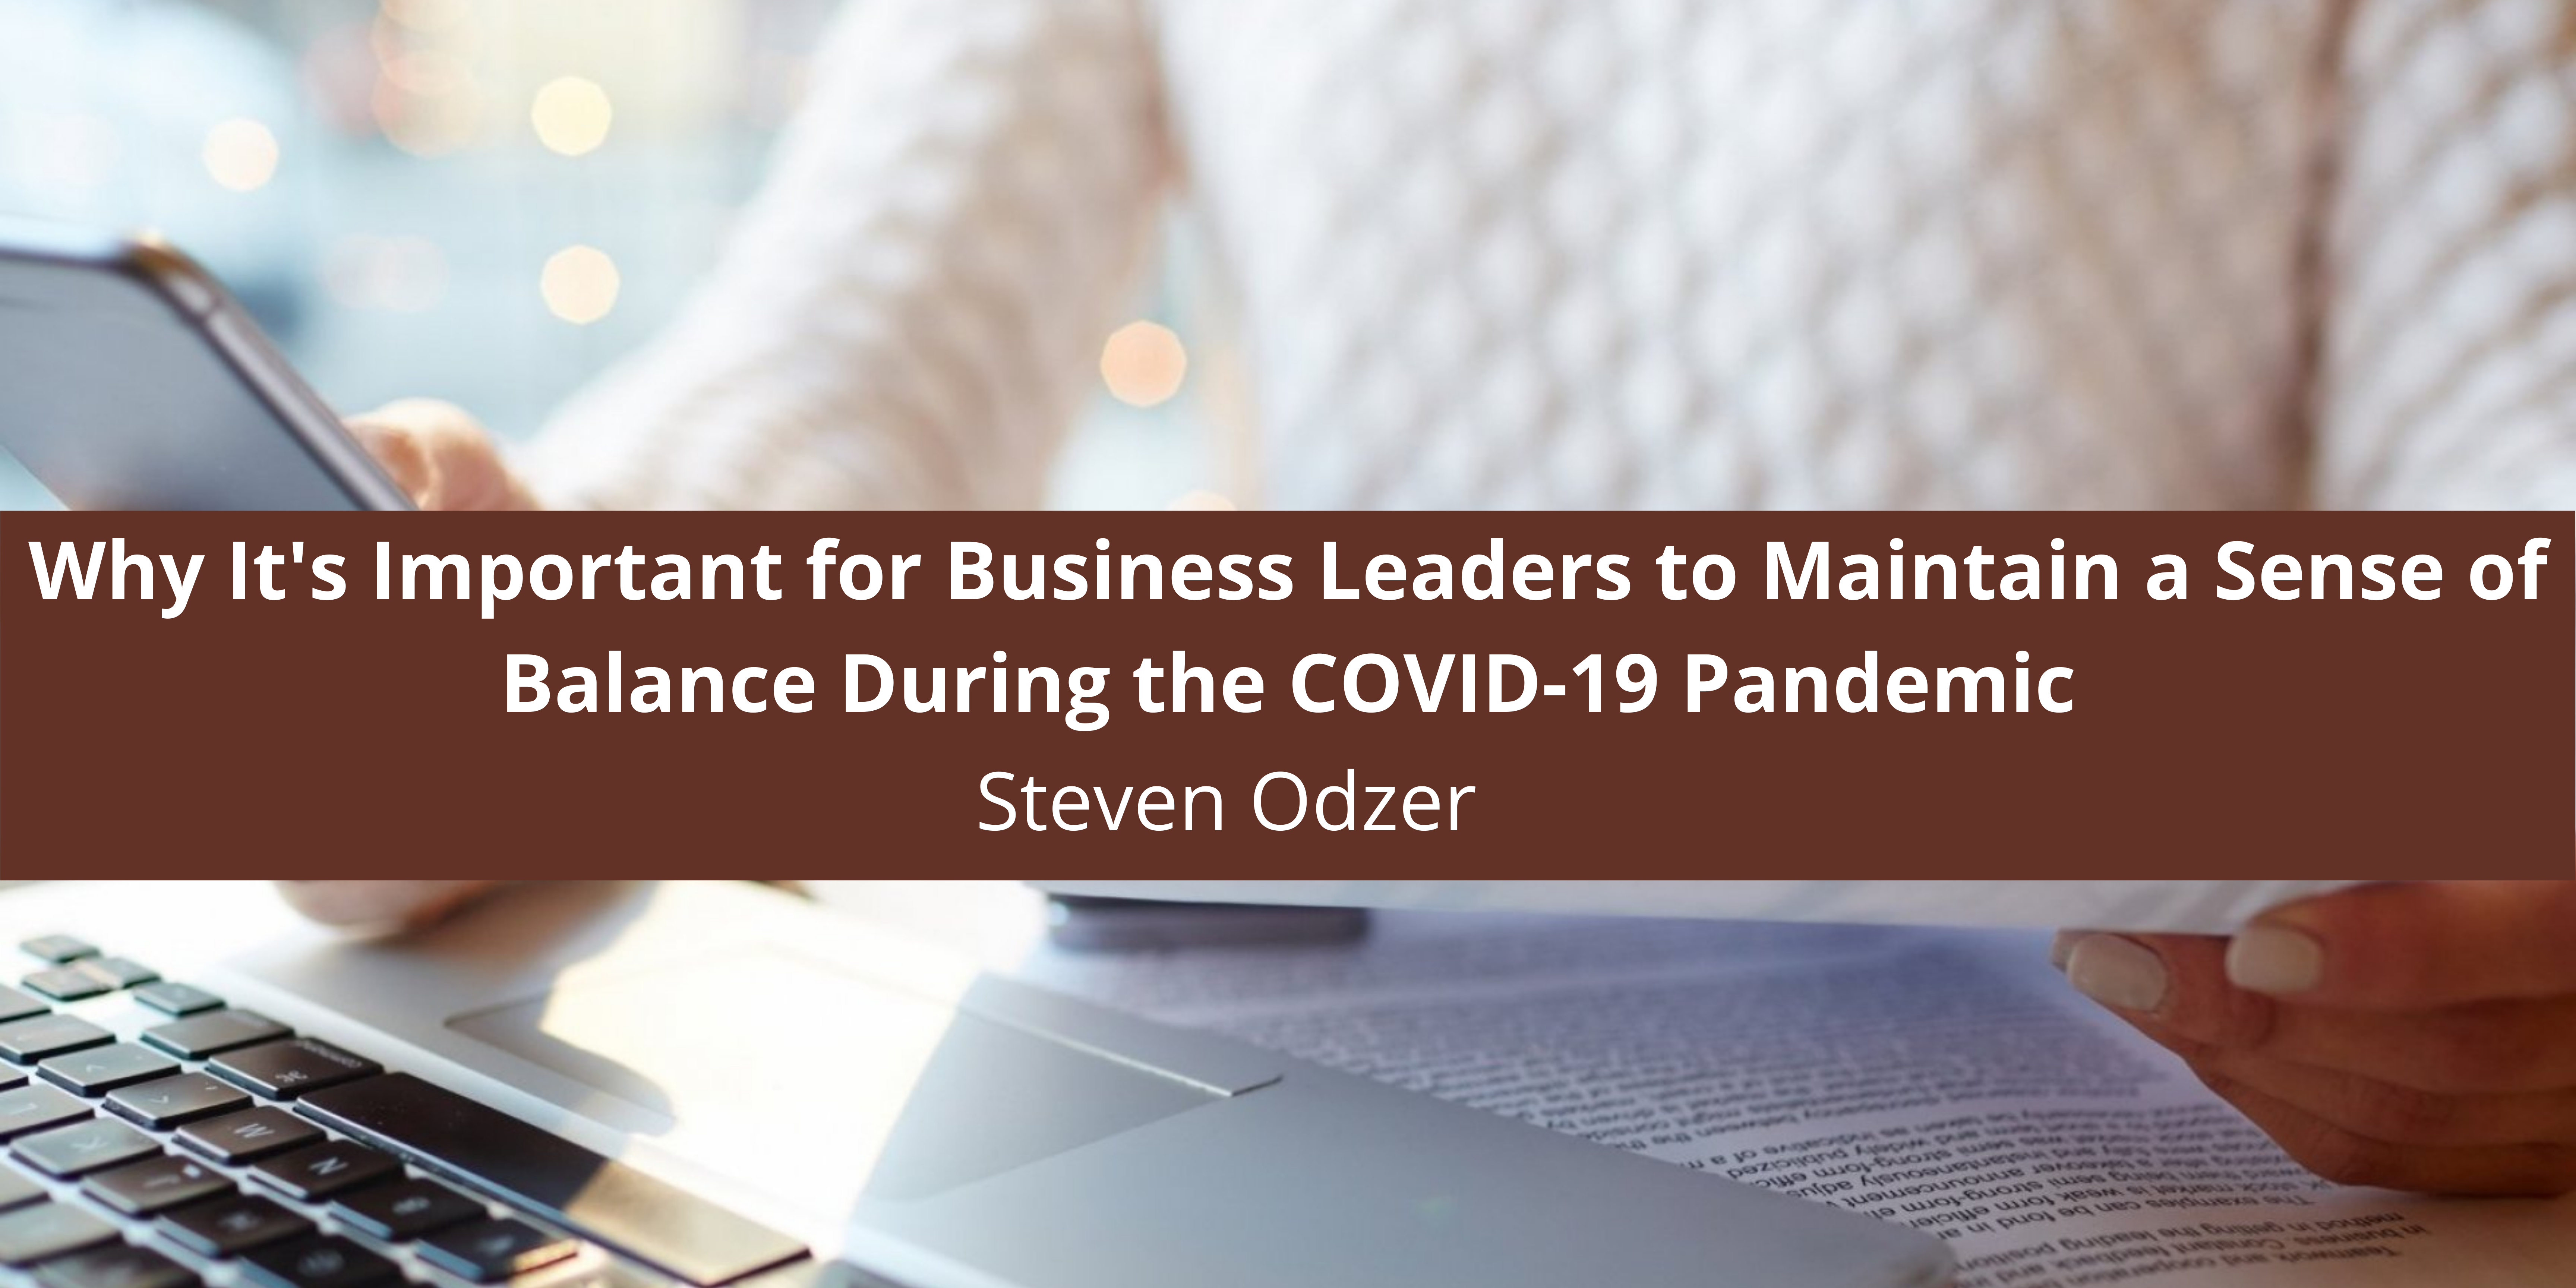 Why It's Important for Business Leaders to Maintain a Sense of Balance During the COVID-19 Pandemic